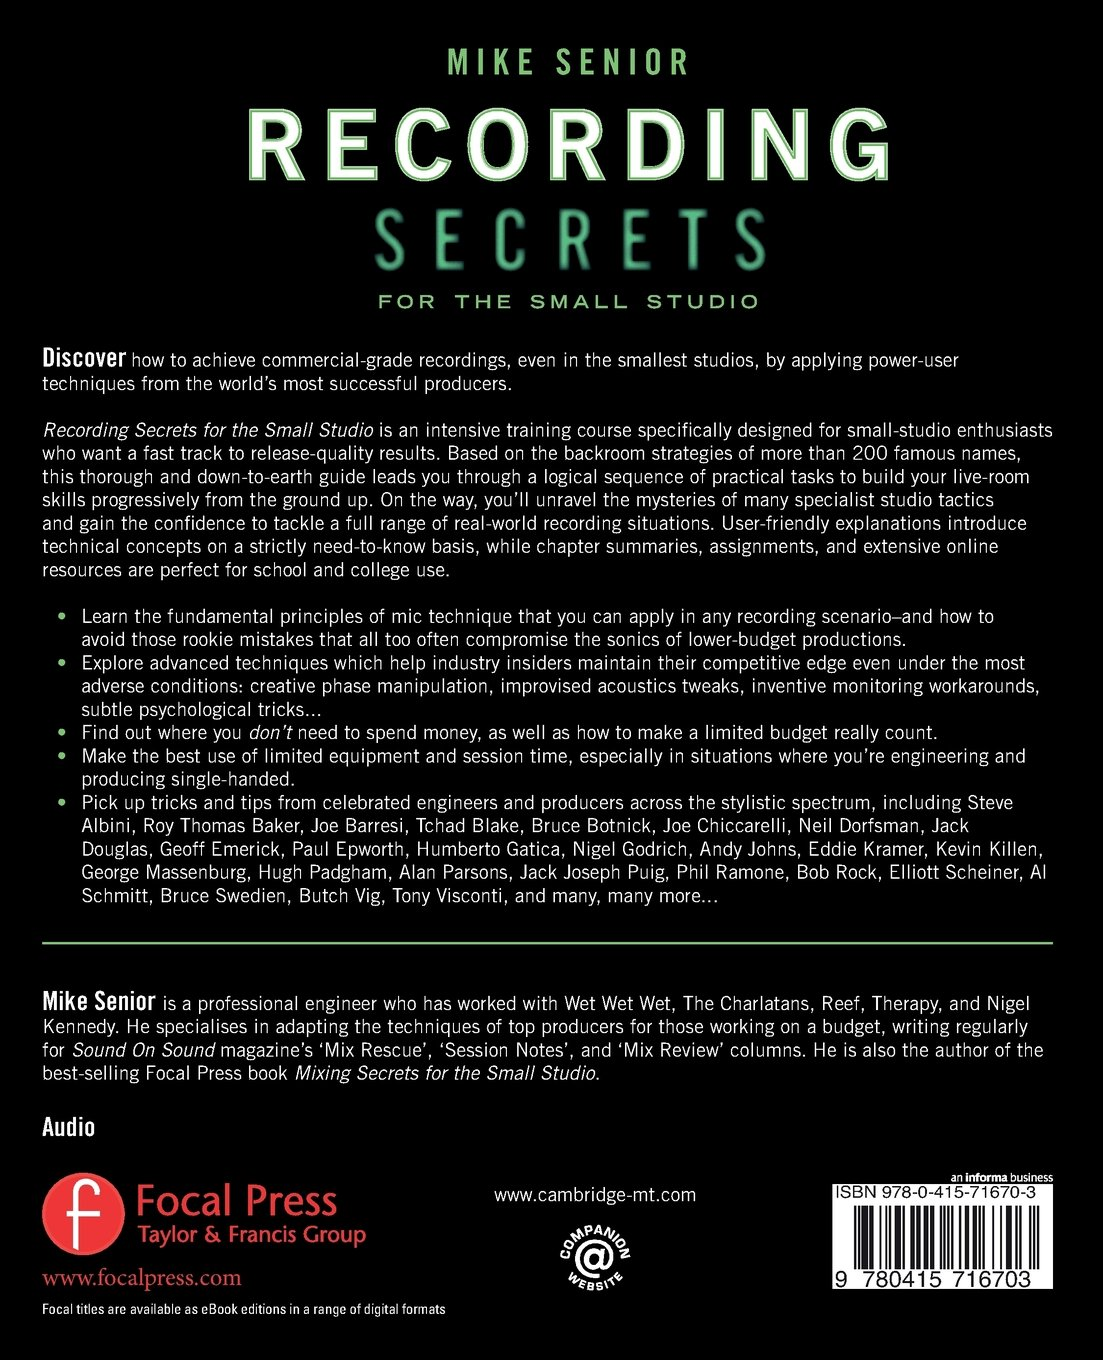 Recording secrets for the small studio mike senior 8601411316104 recording secrets for the small studio mike senior 8601411316104 books amazon fandeluxe Image collections